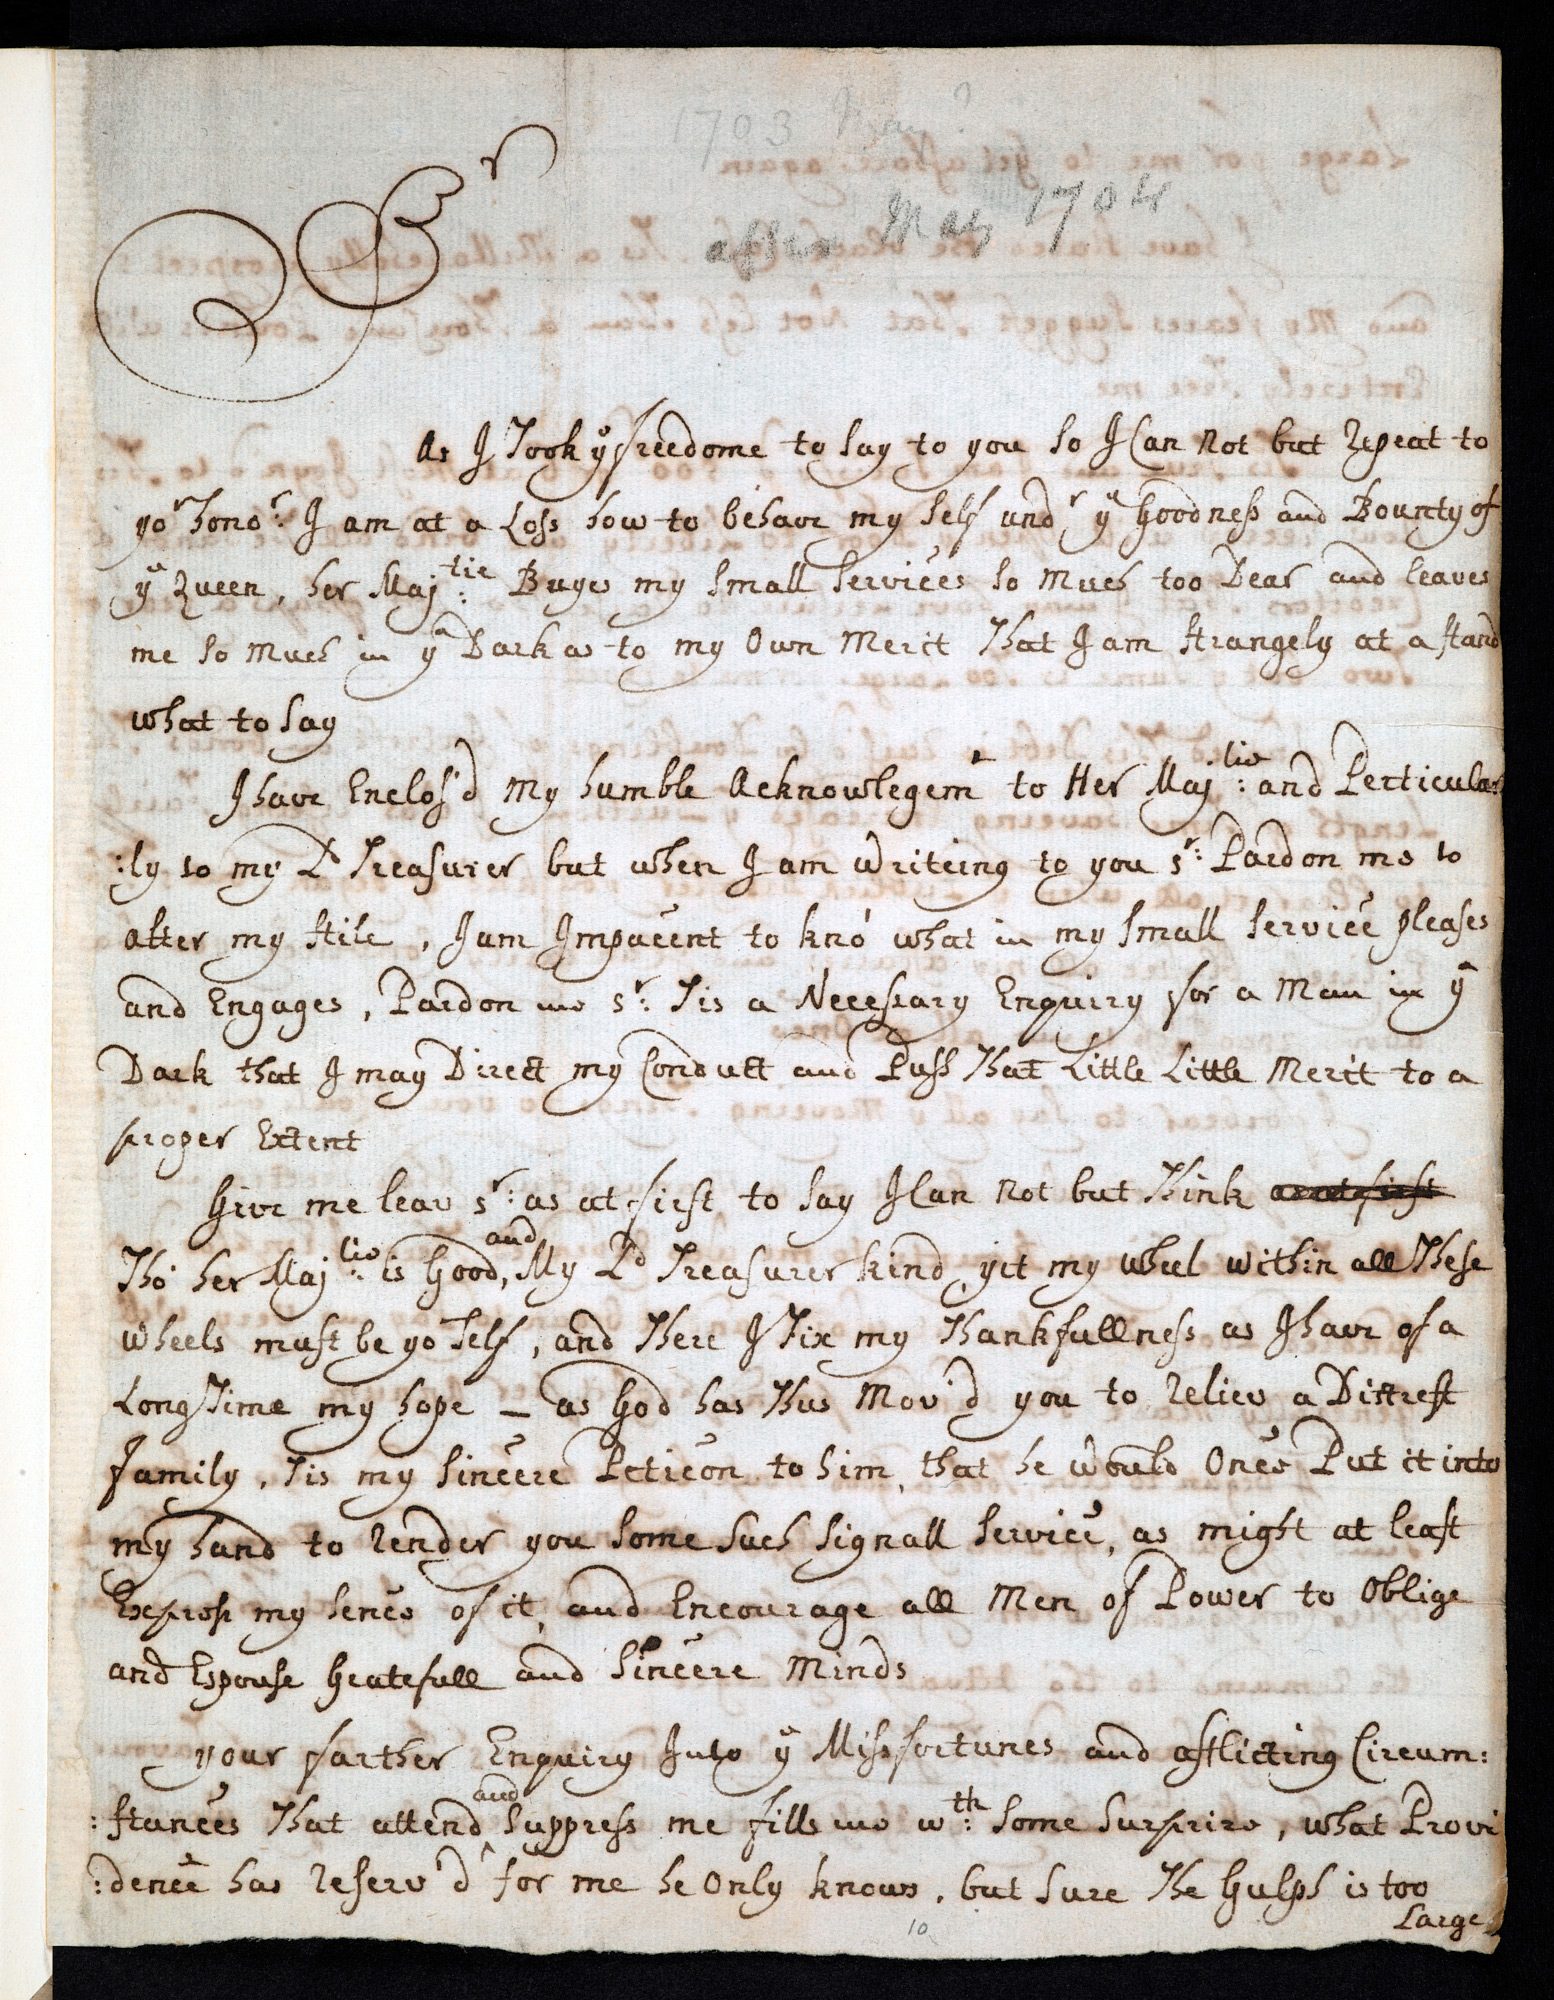 Letters from Daniel Defoe to Robert Harley